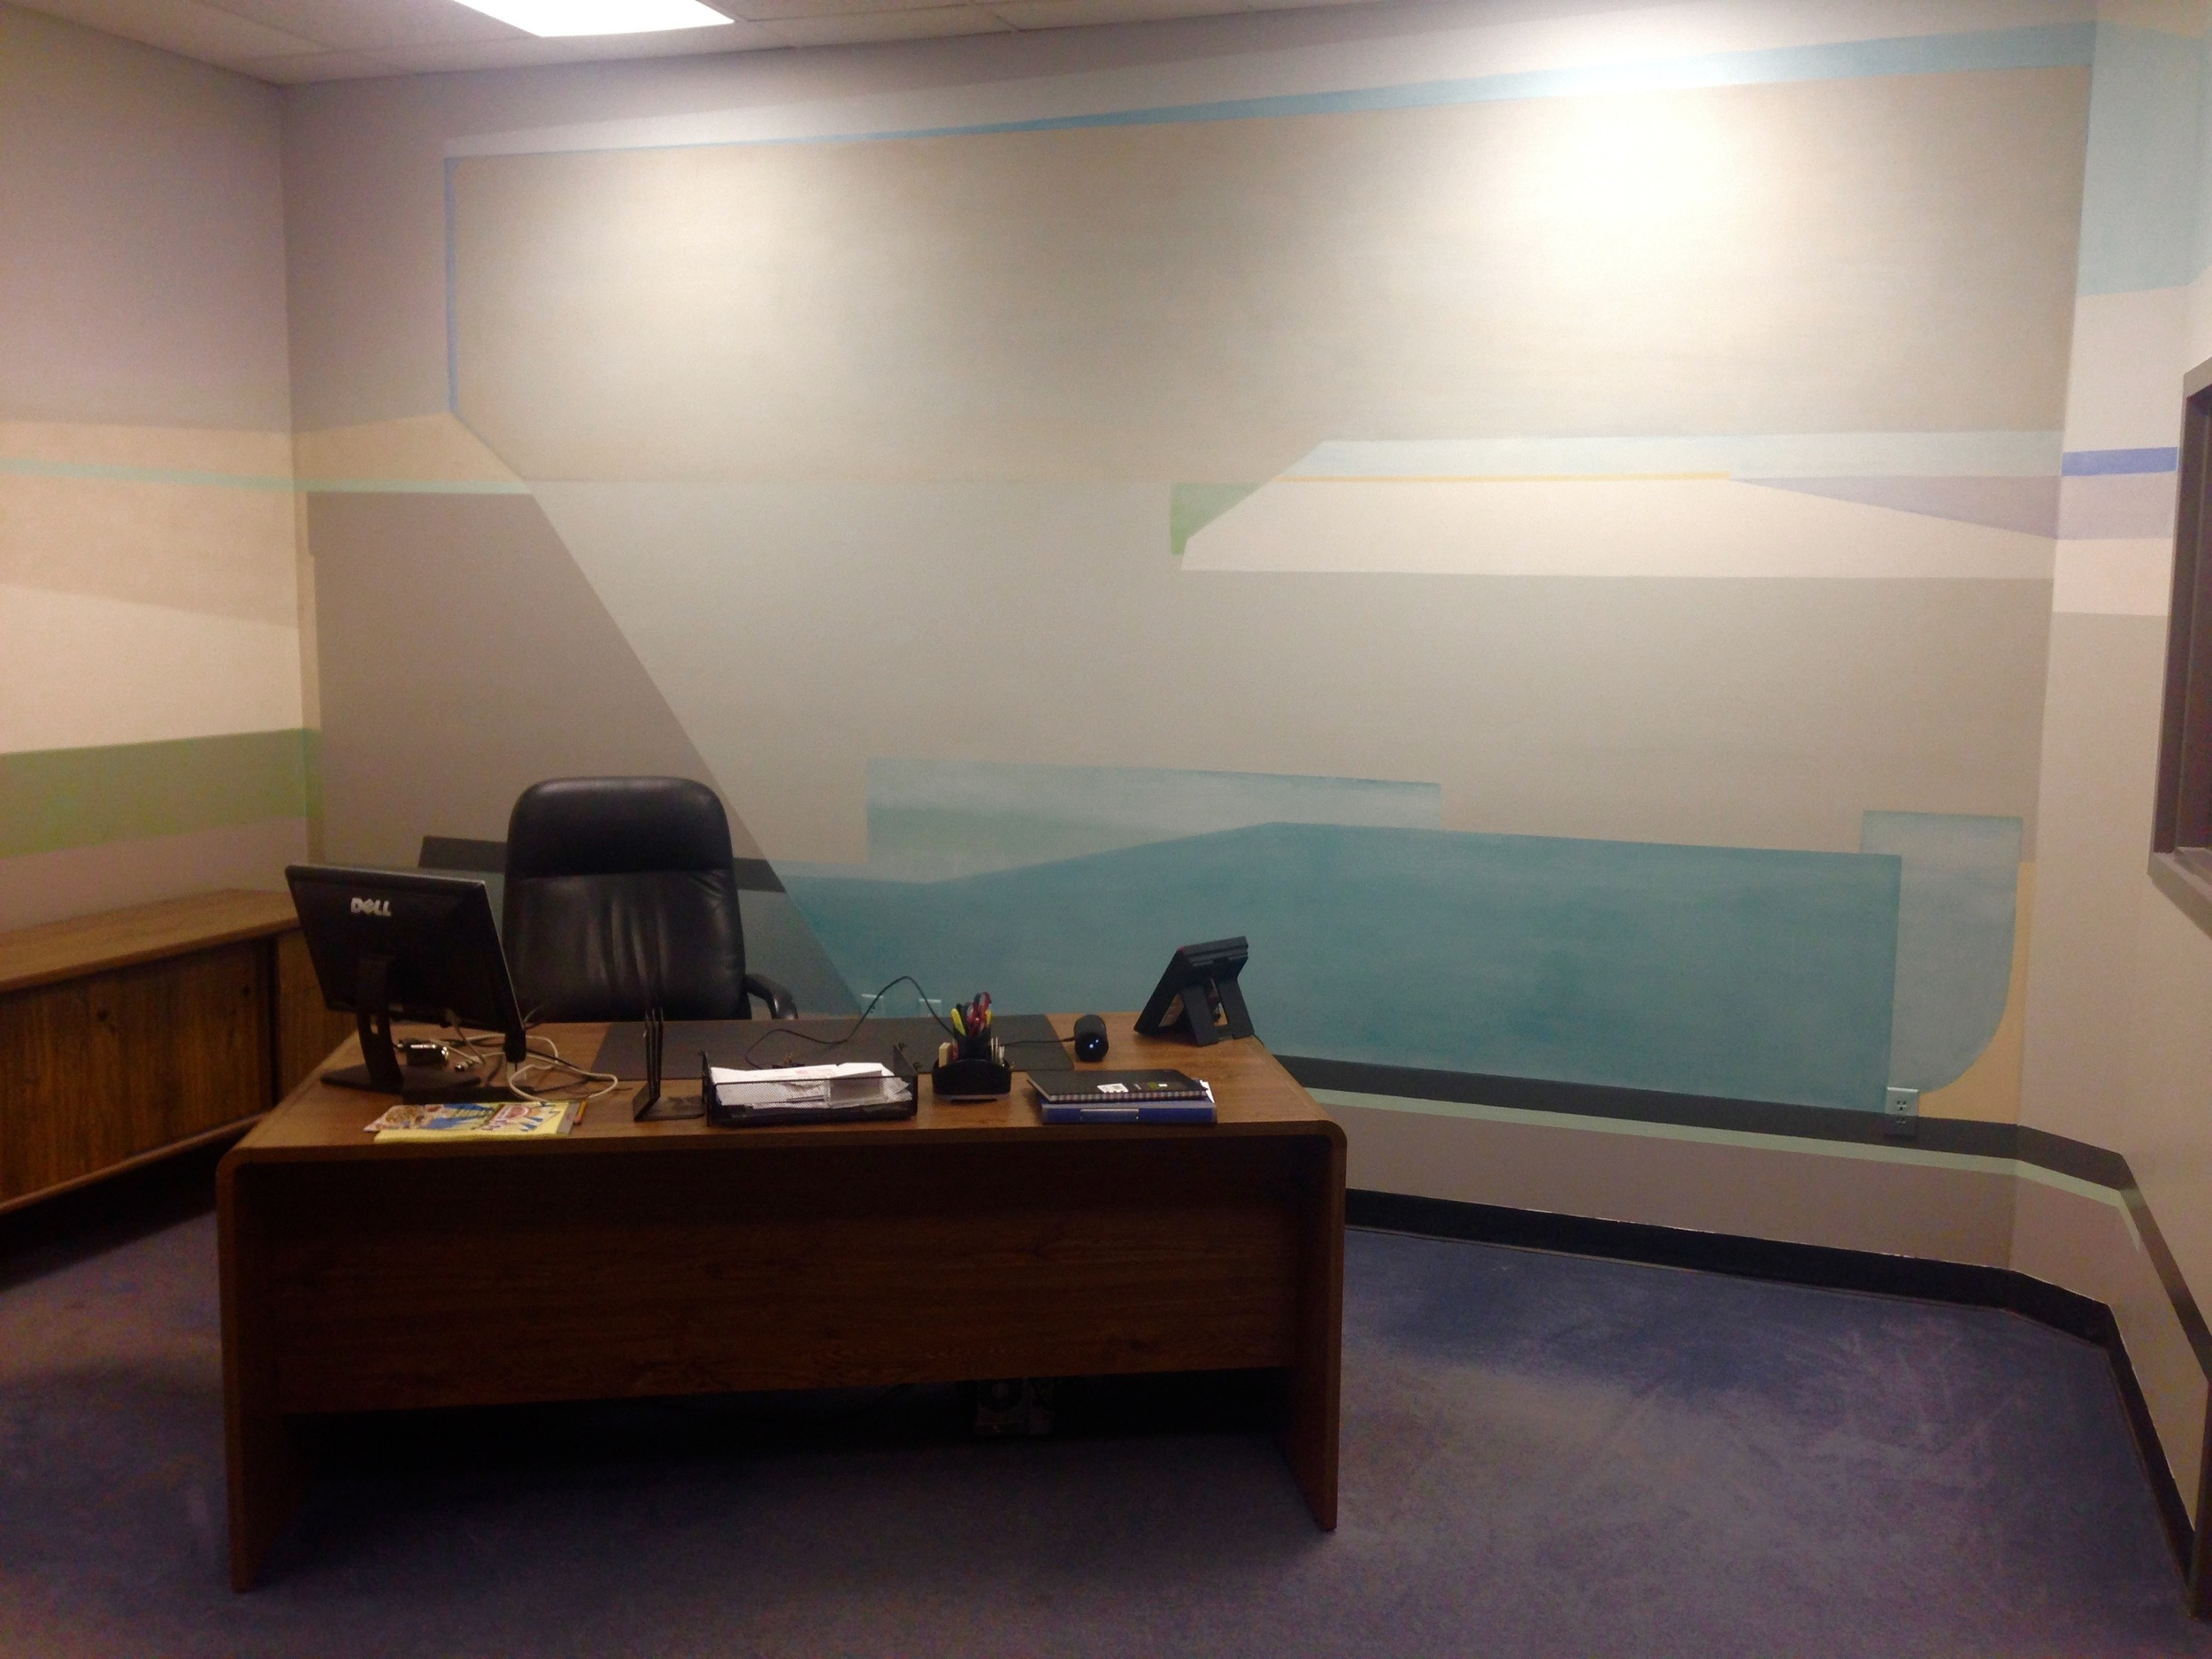 Office space in Norwood - front desk area